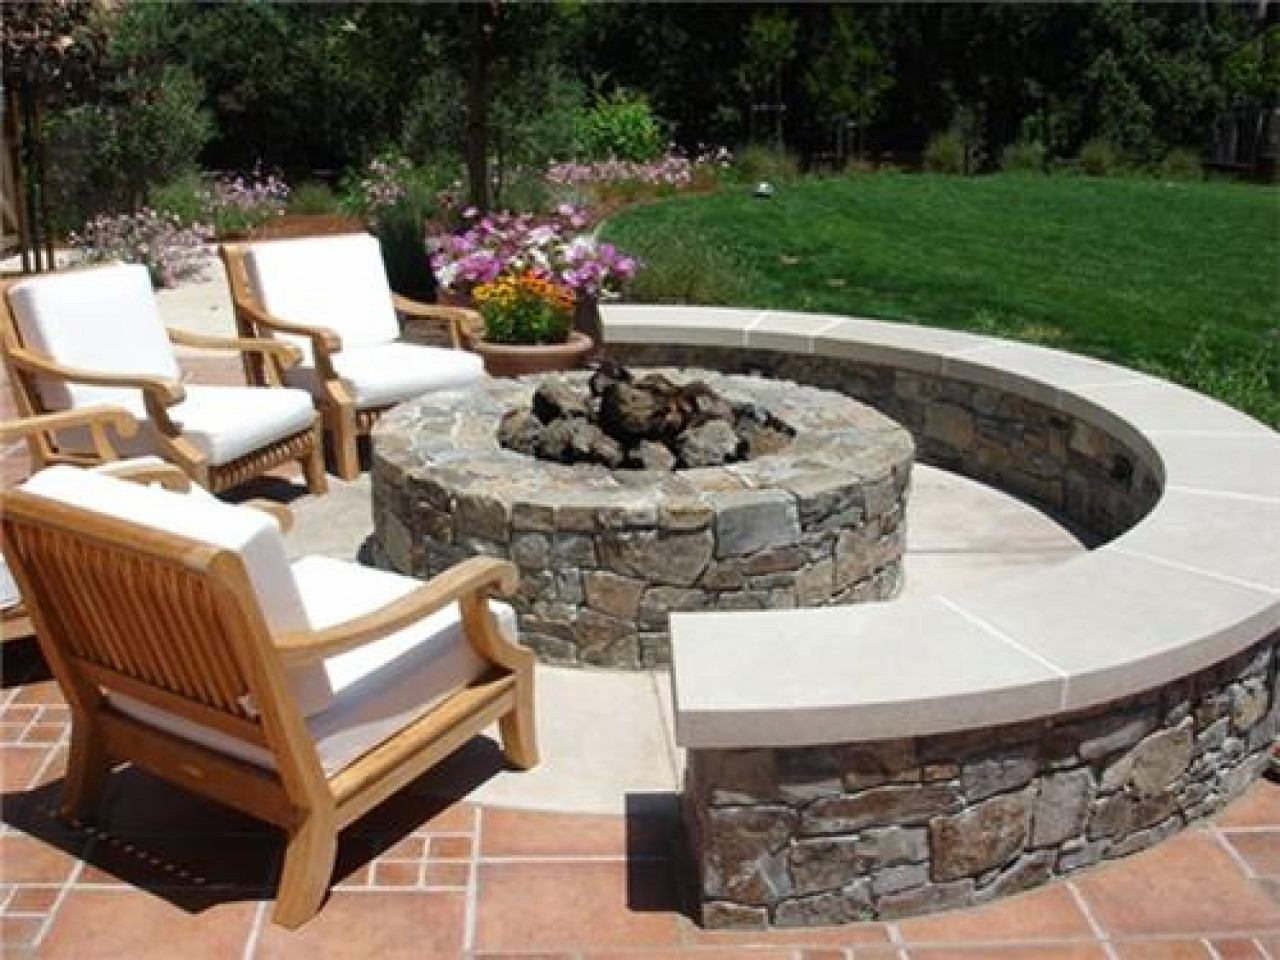 Best ideas about Patio Fire Pit . Save or Pin Round outdoor tables and chairs outdoor fire pit ideas Now.